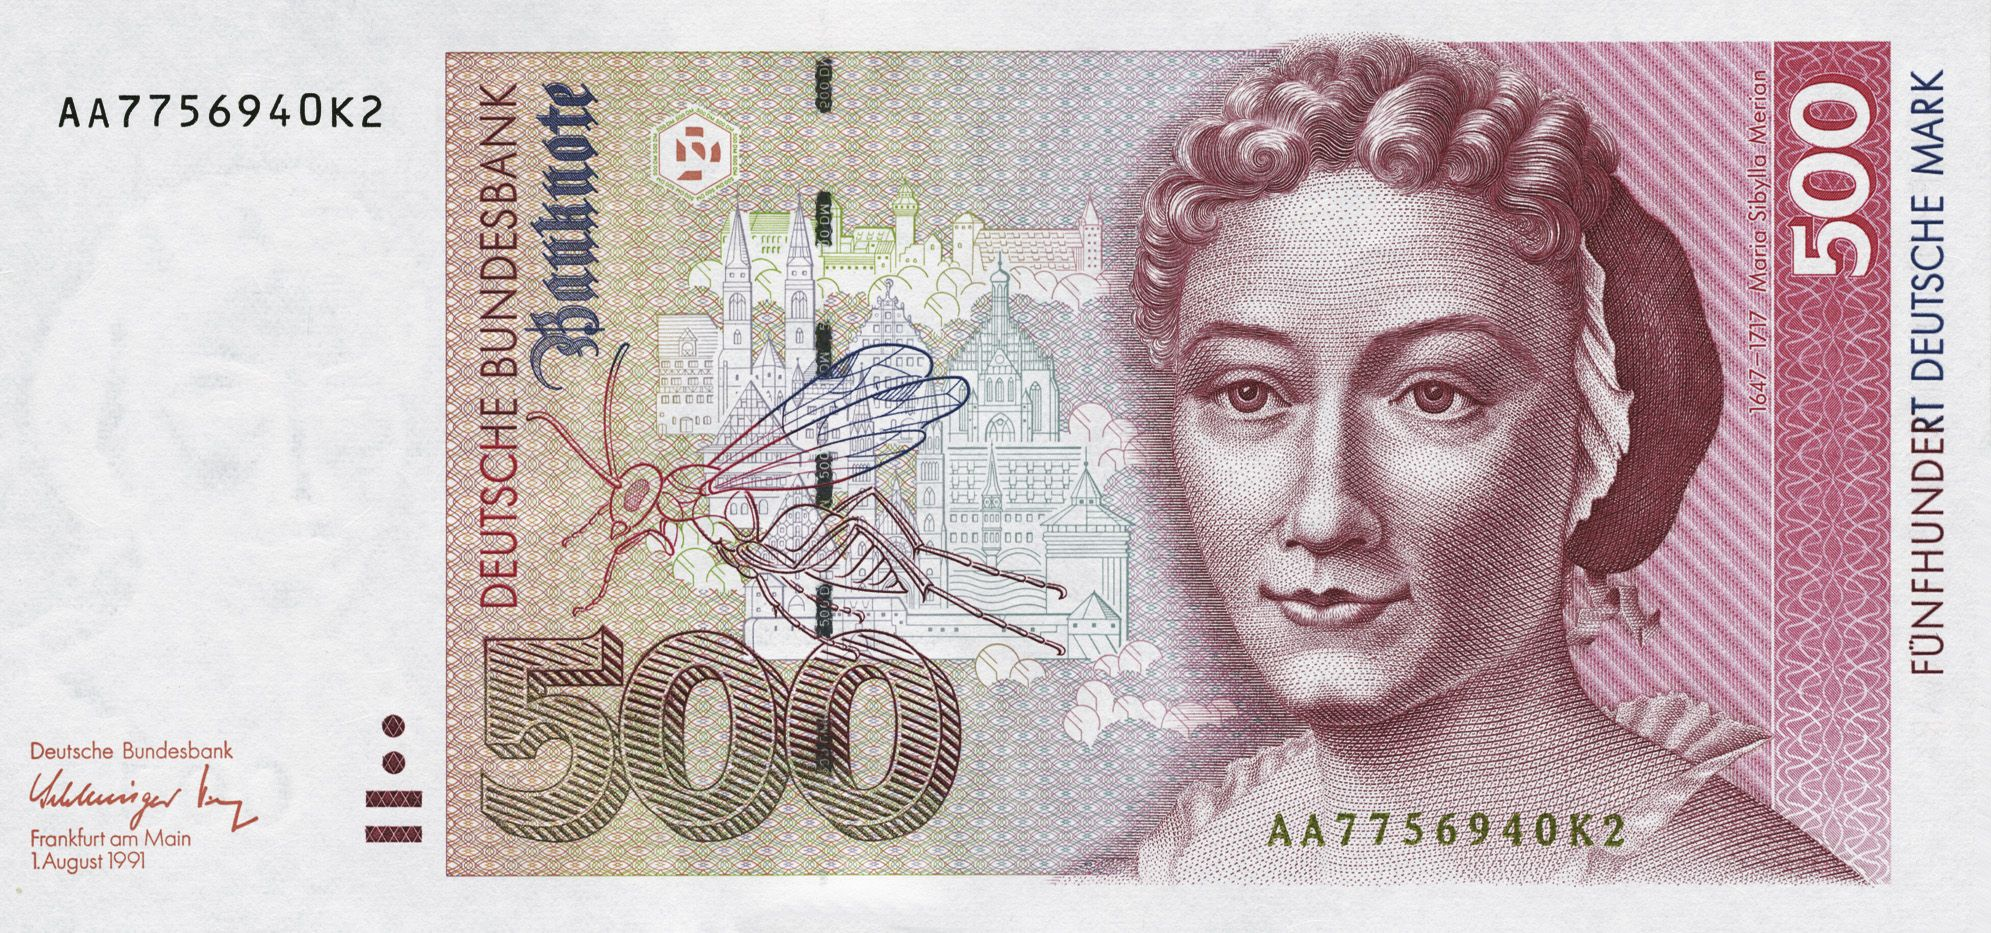 This is an image of German currency. I love the different